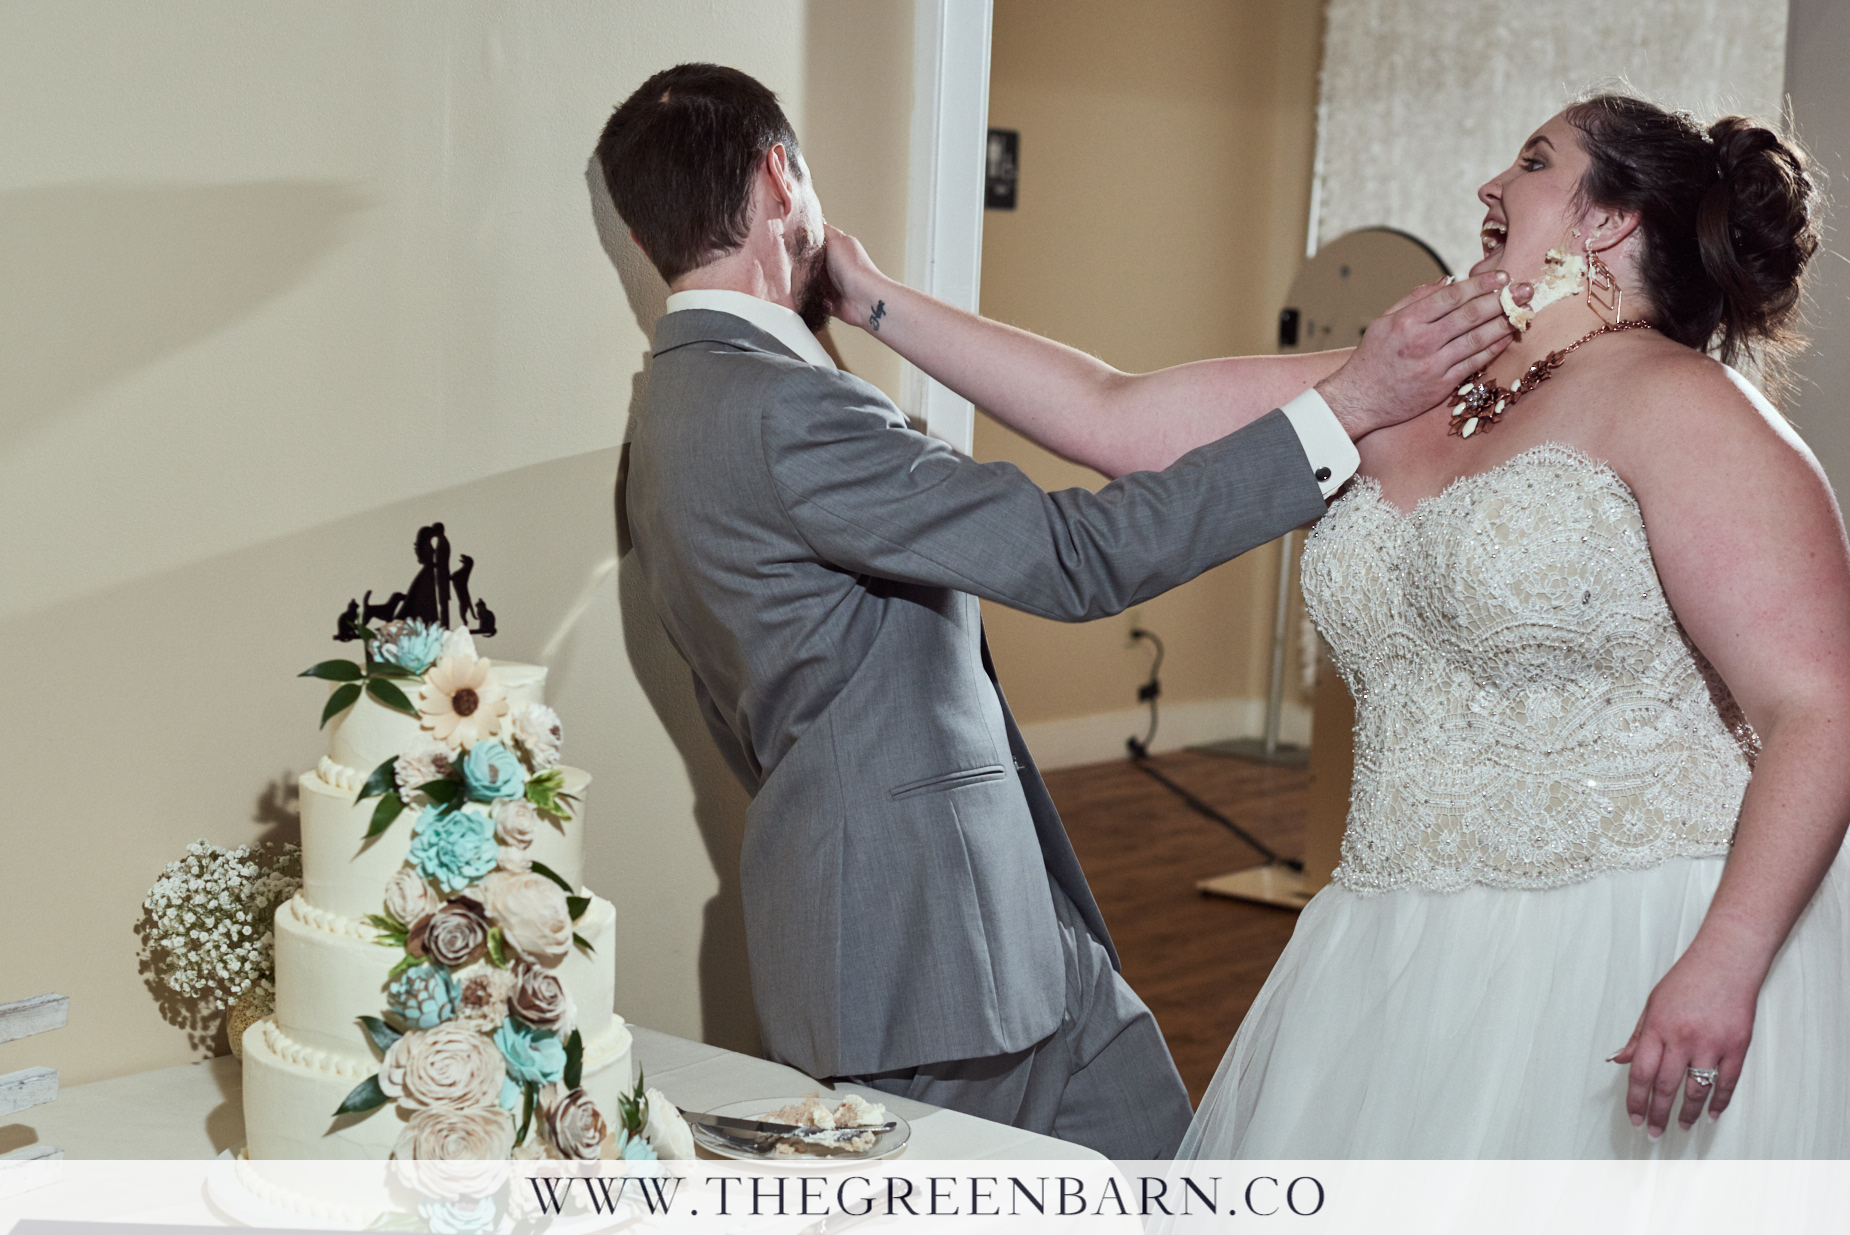 Bride and Groom Smash Cake into Each Other's Faces at this Fun Wedding near Burlington, VT